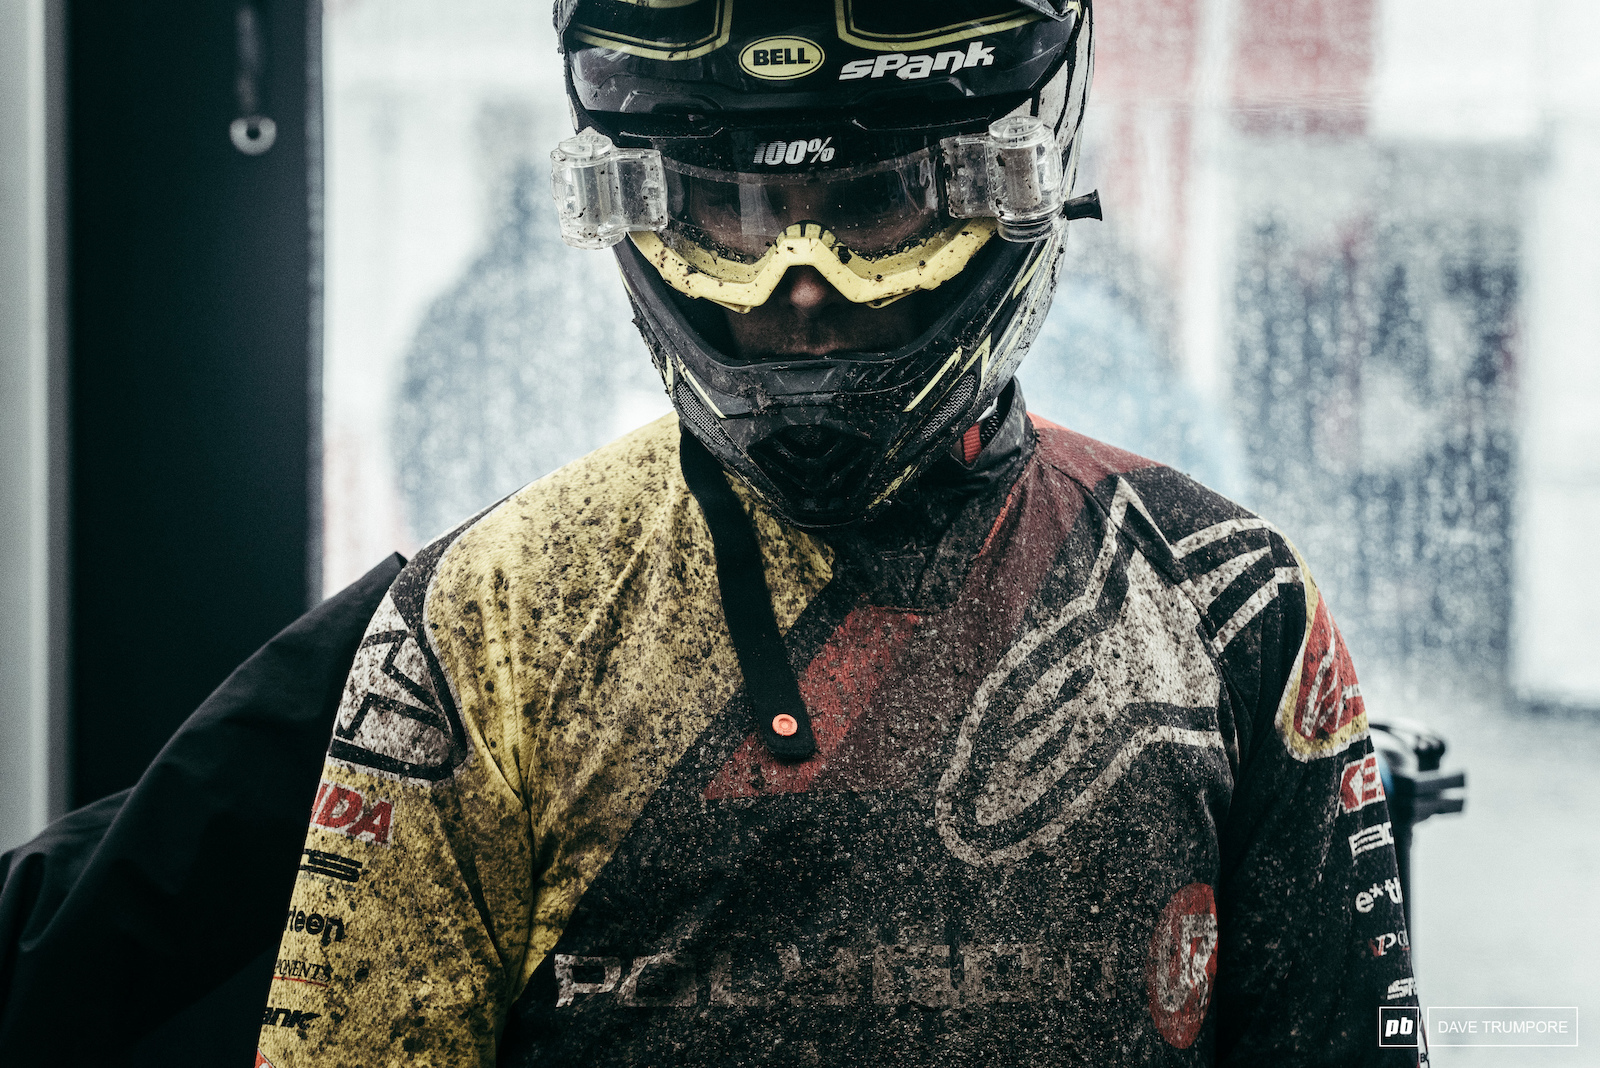 Fort William is a mental game for riders as it s easy to get hung up on the weather and track conditions. Those who can push past that thrive in the wet cold fog midges rocks and general discomfort of racing here.